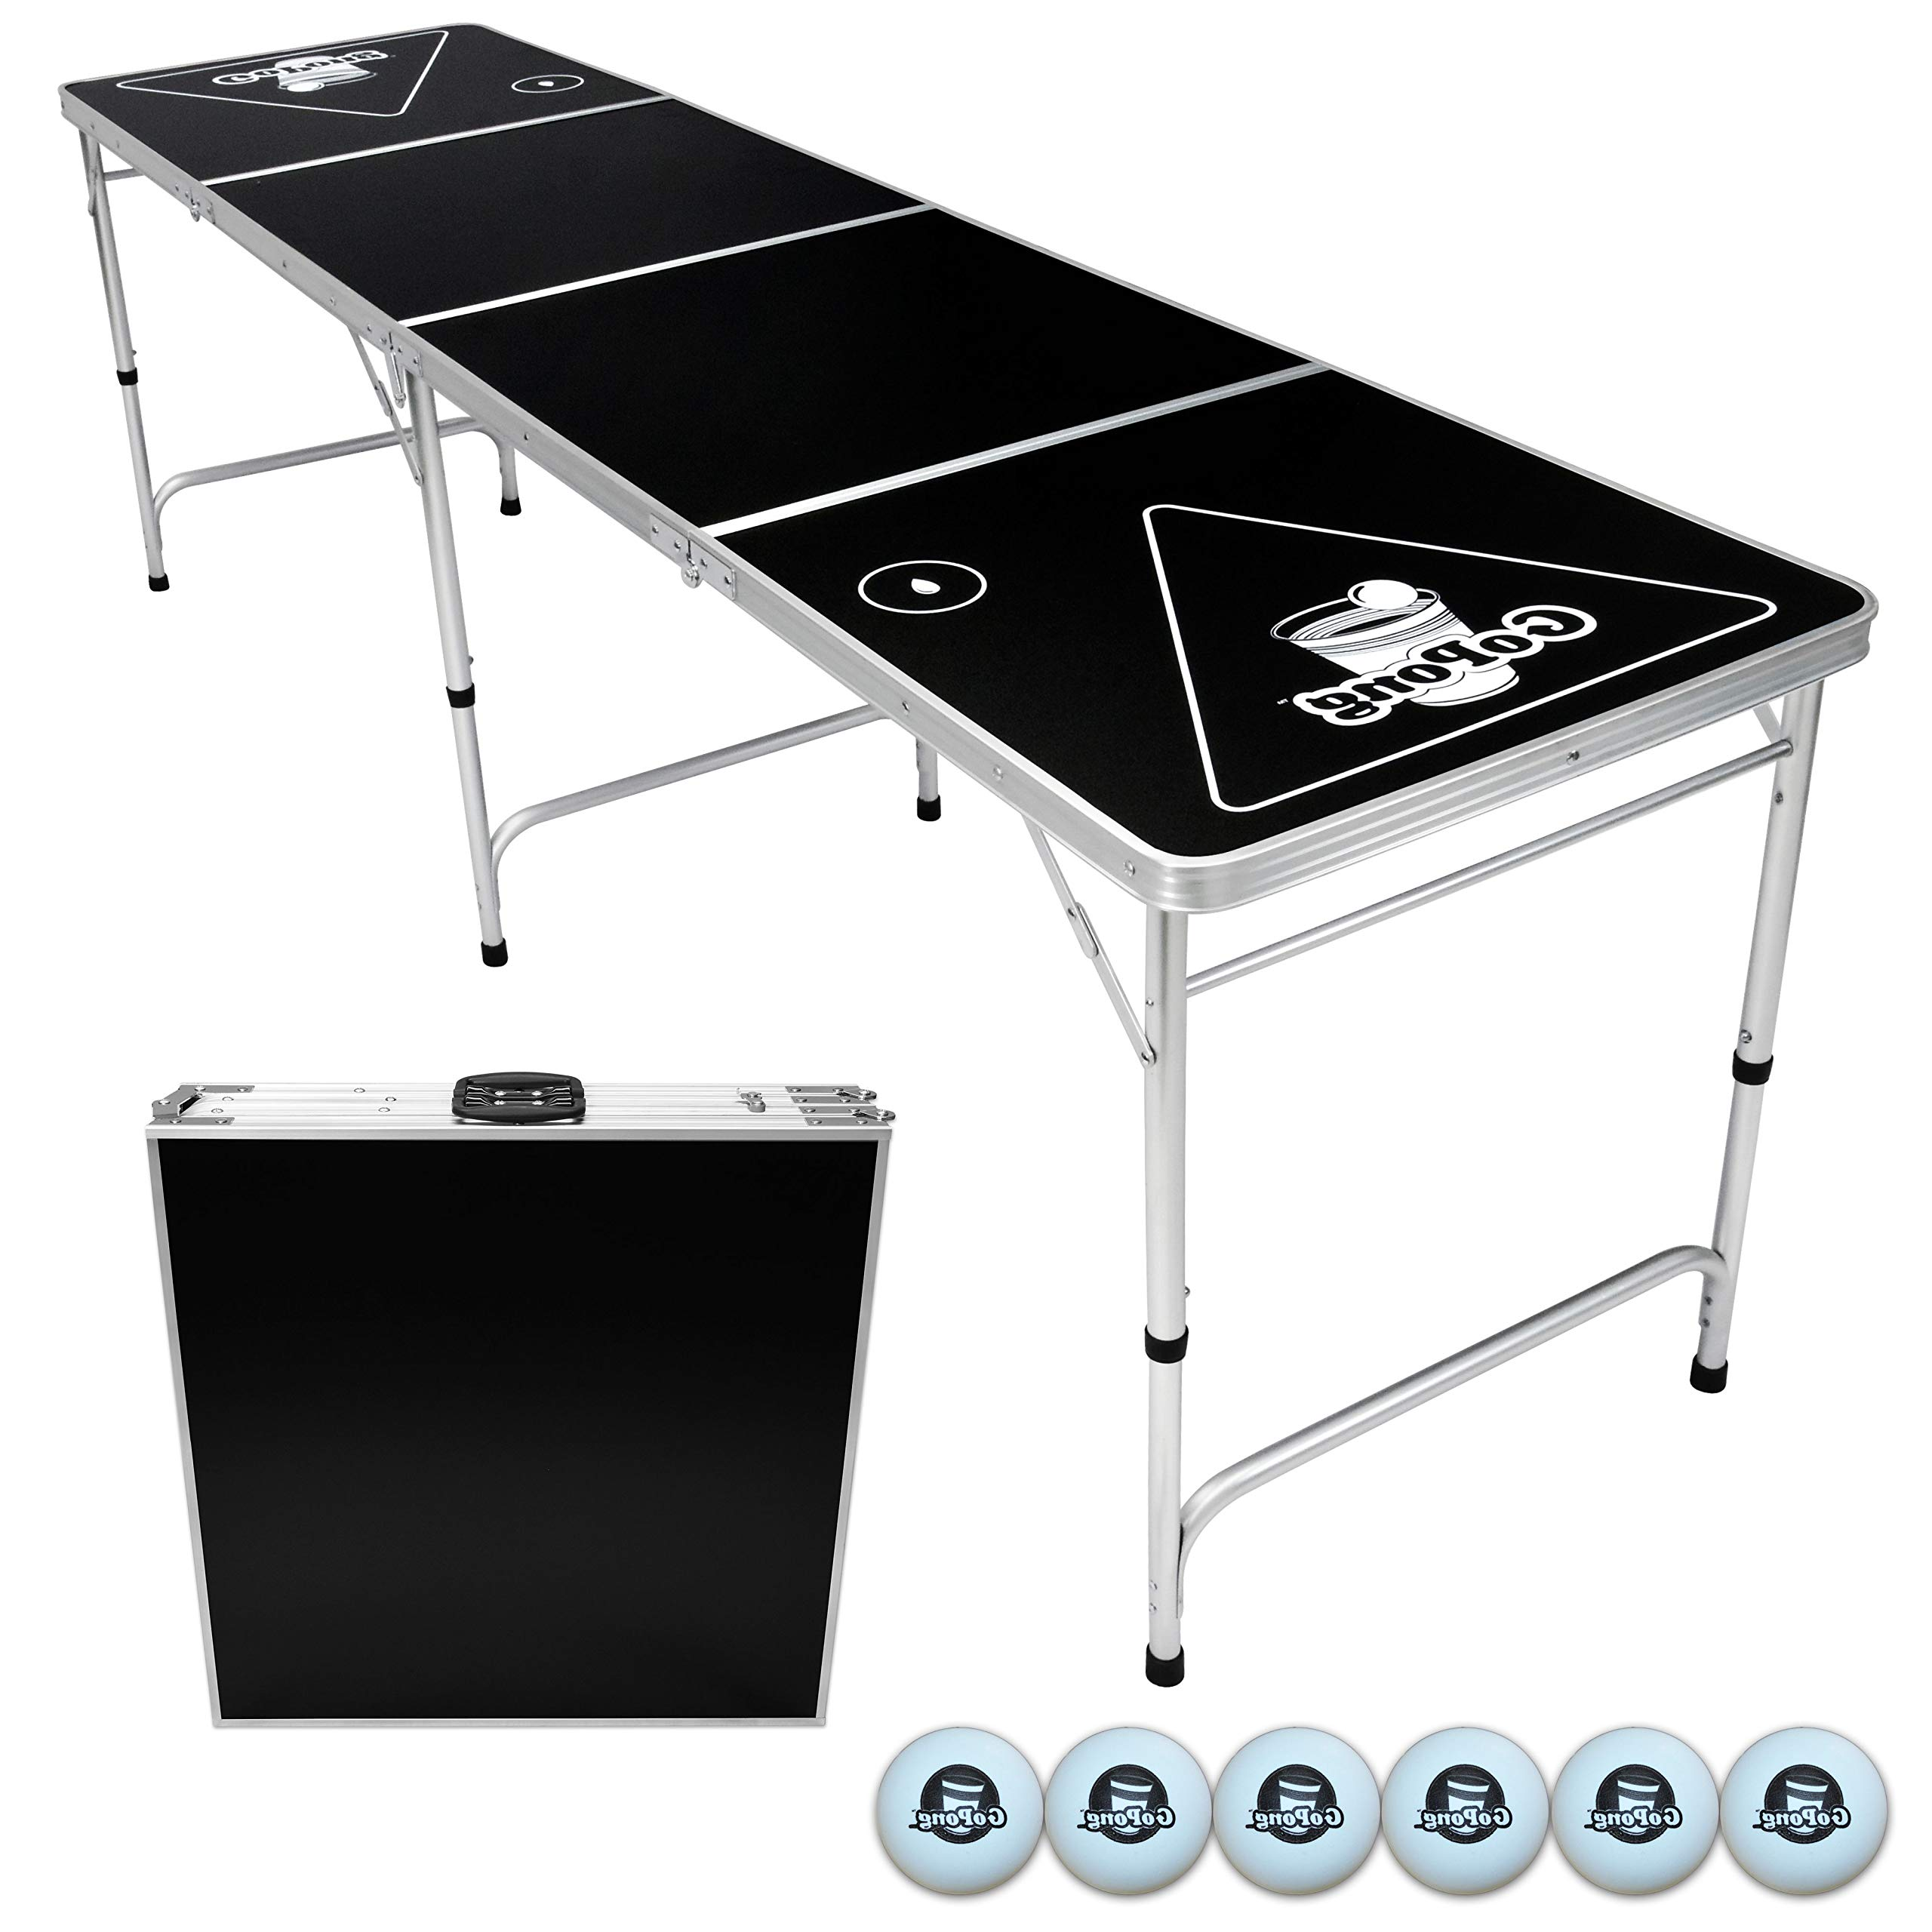 HealthyBells Portable Folding Beer Pong/Flip Cup Table, 6 Balls Included